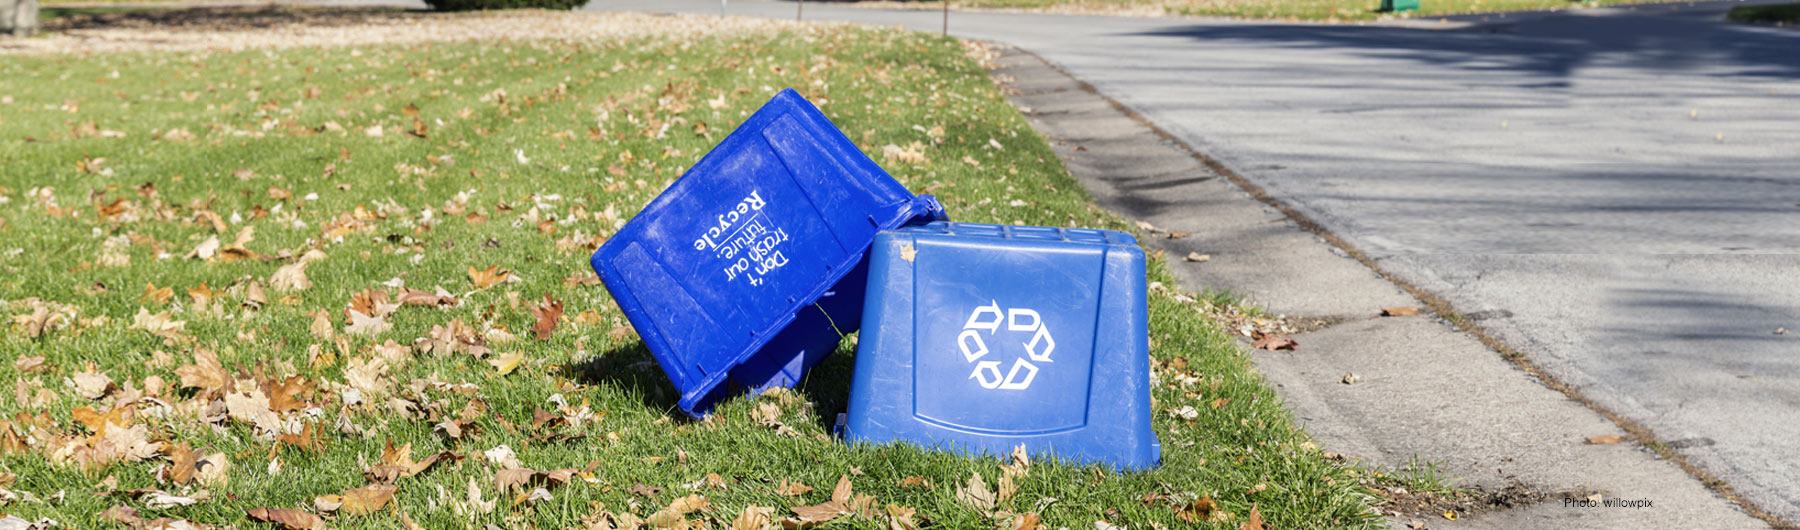 recycle bins on lawn